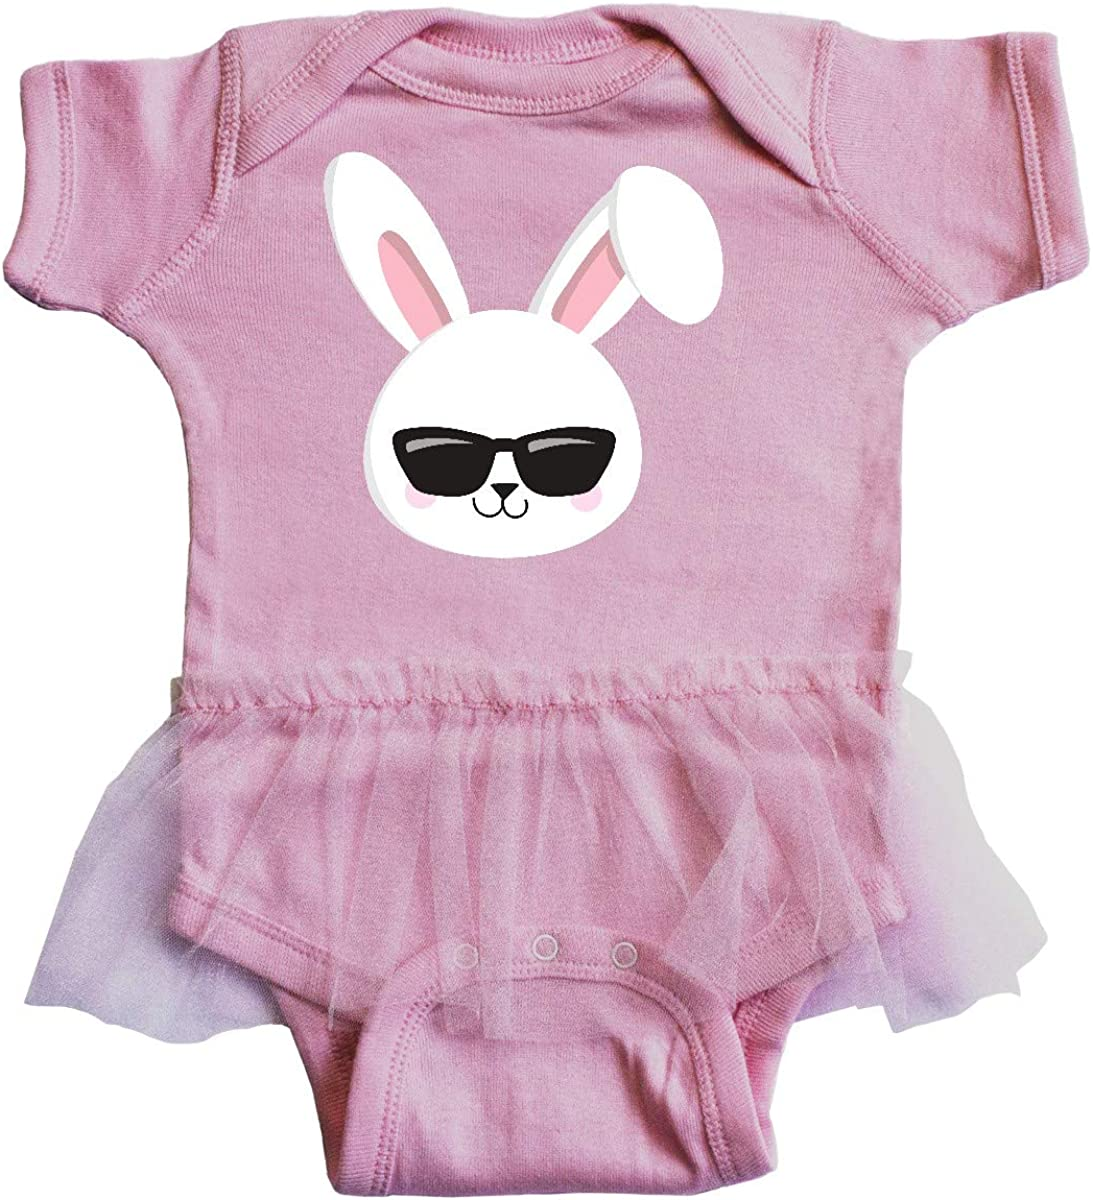 inktastic Cute Bunny Bunny Wearing Sunglasses Infant Tutu Bodysuit White Bunny